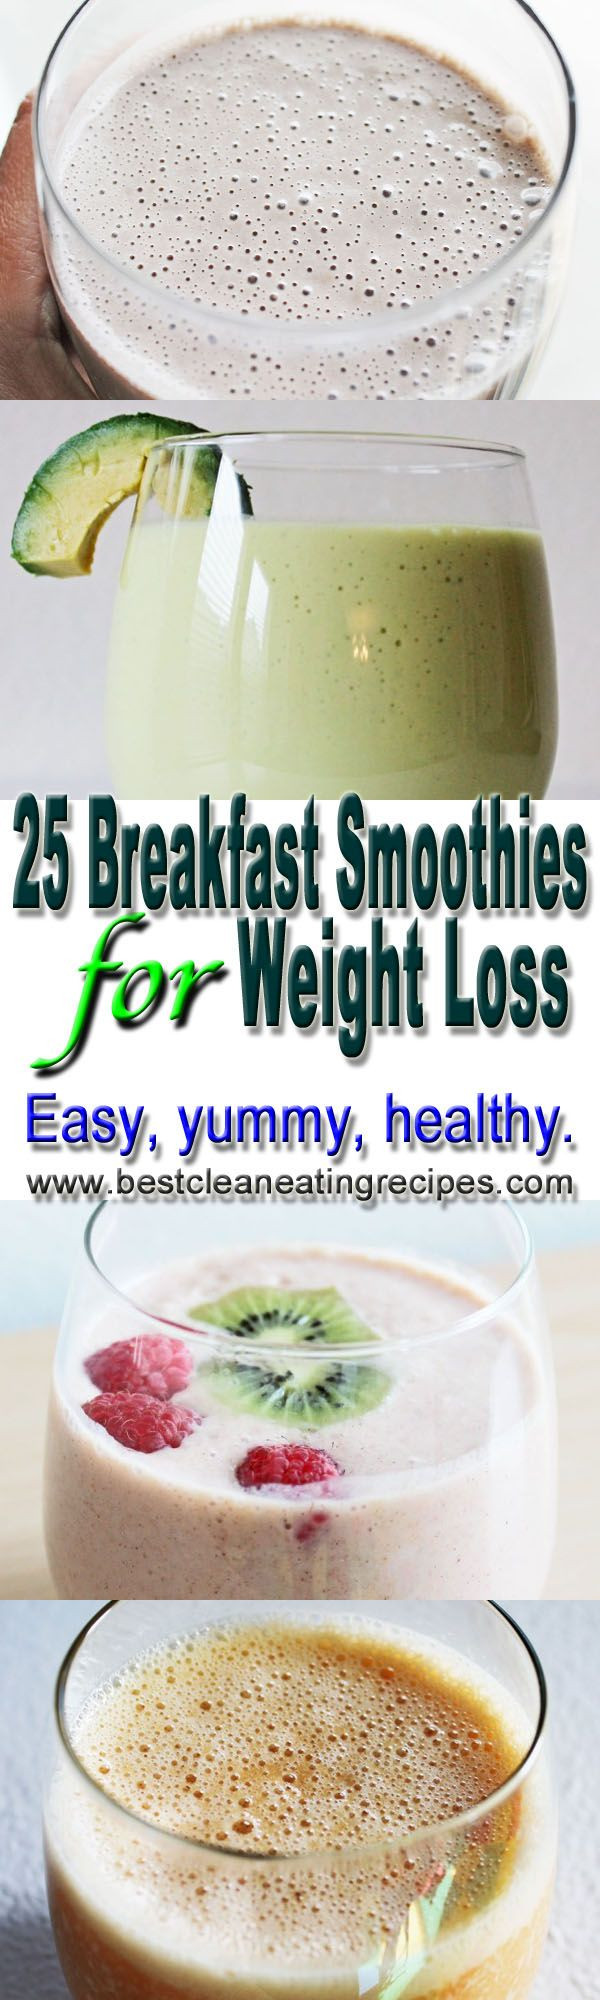 Breakfast Smoothie Recipes For Weight Loss  25 breakfast smoothies for weight loss by Best Clean